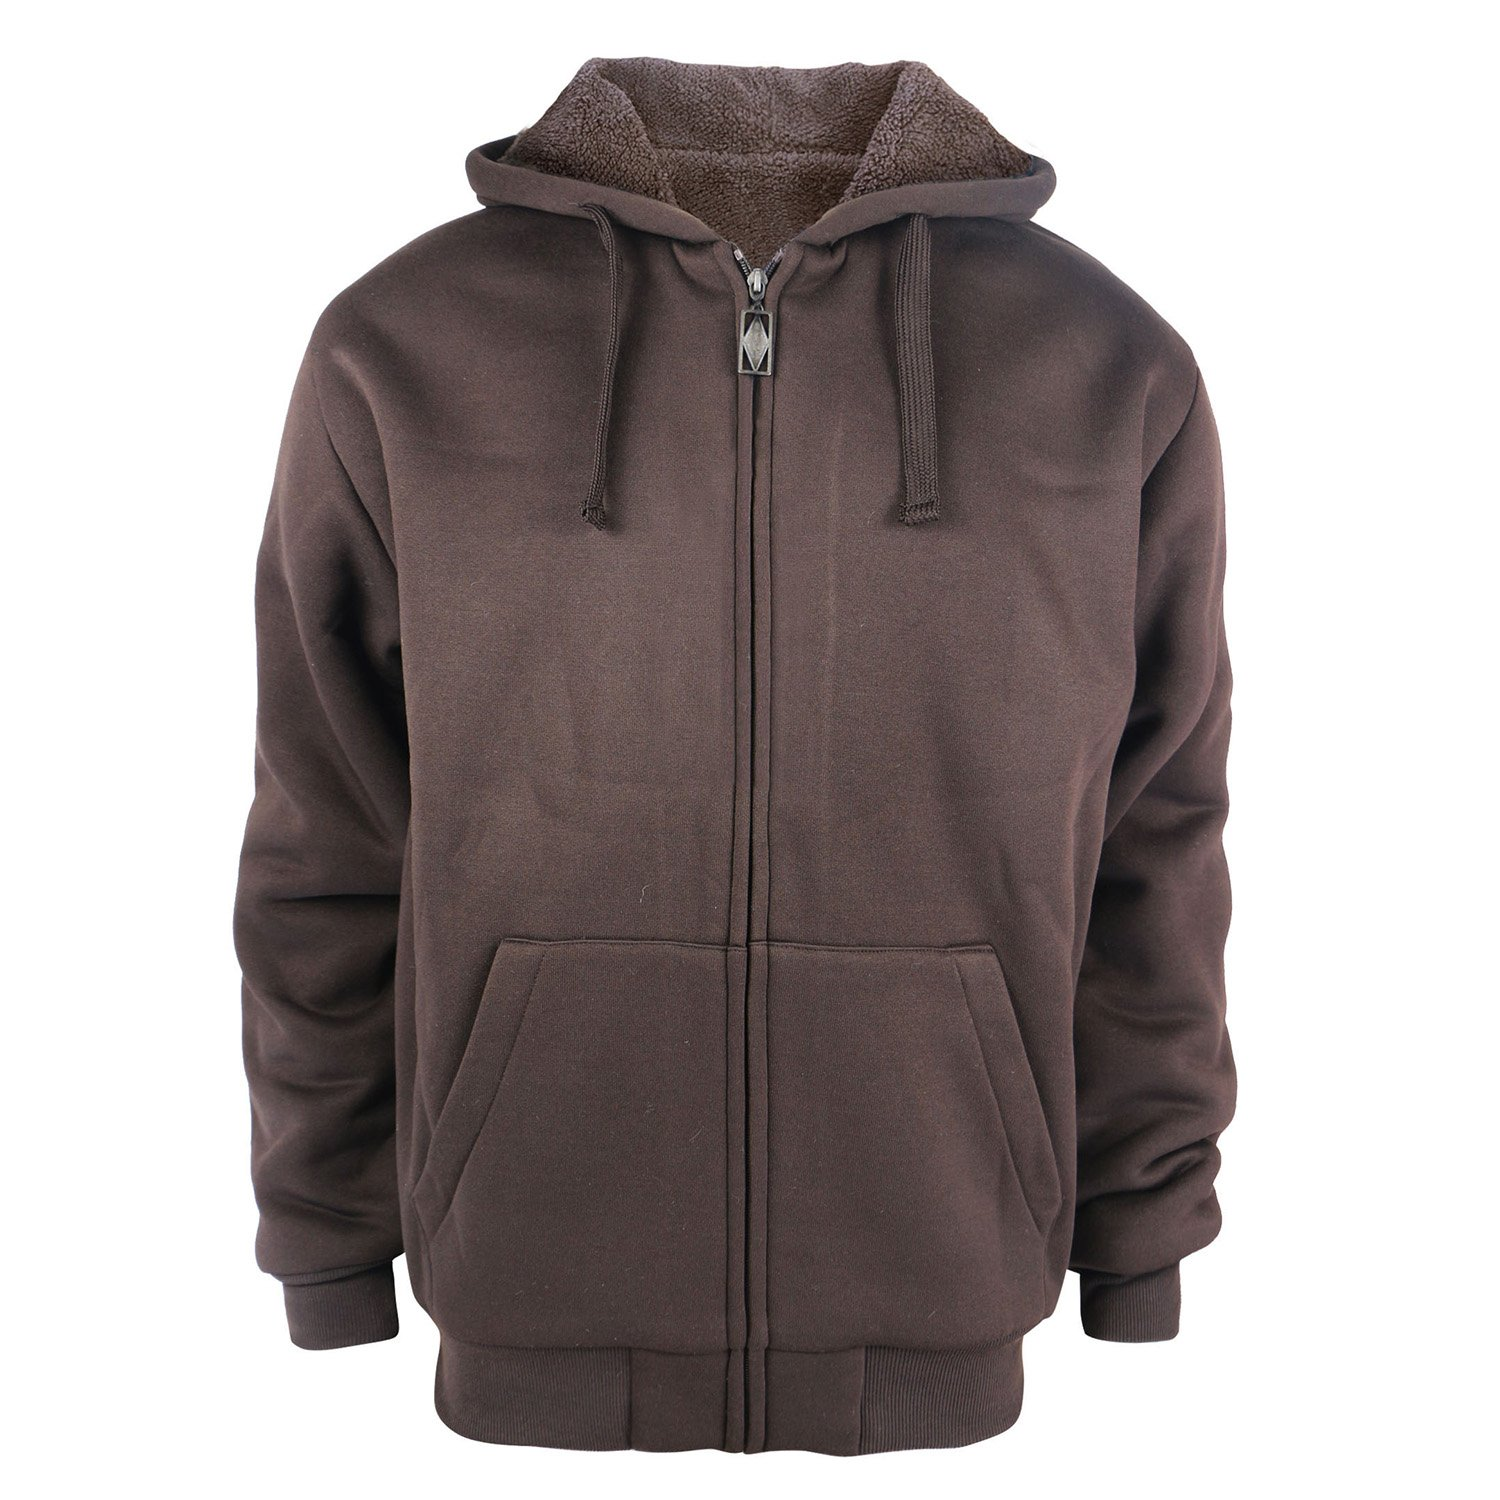 Amazon Best Sellers: Best Men's Fashion Hoodies & Sweatshirts